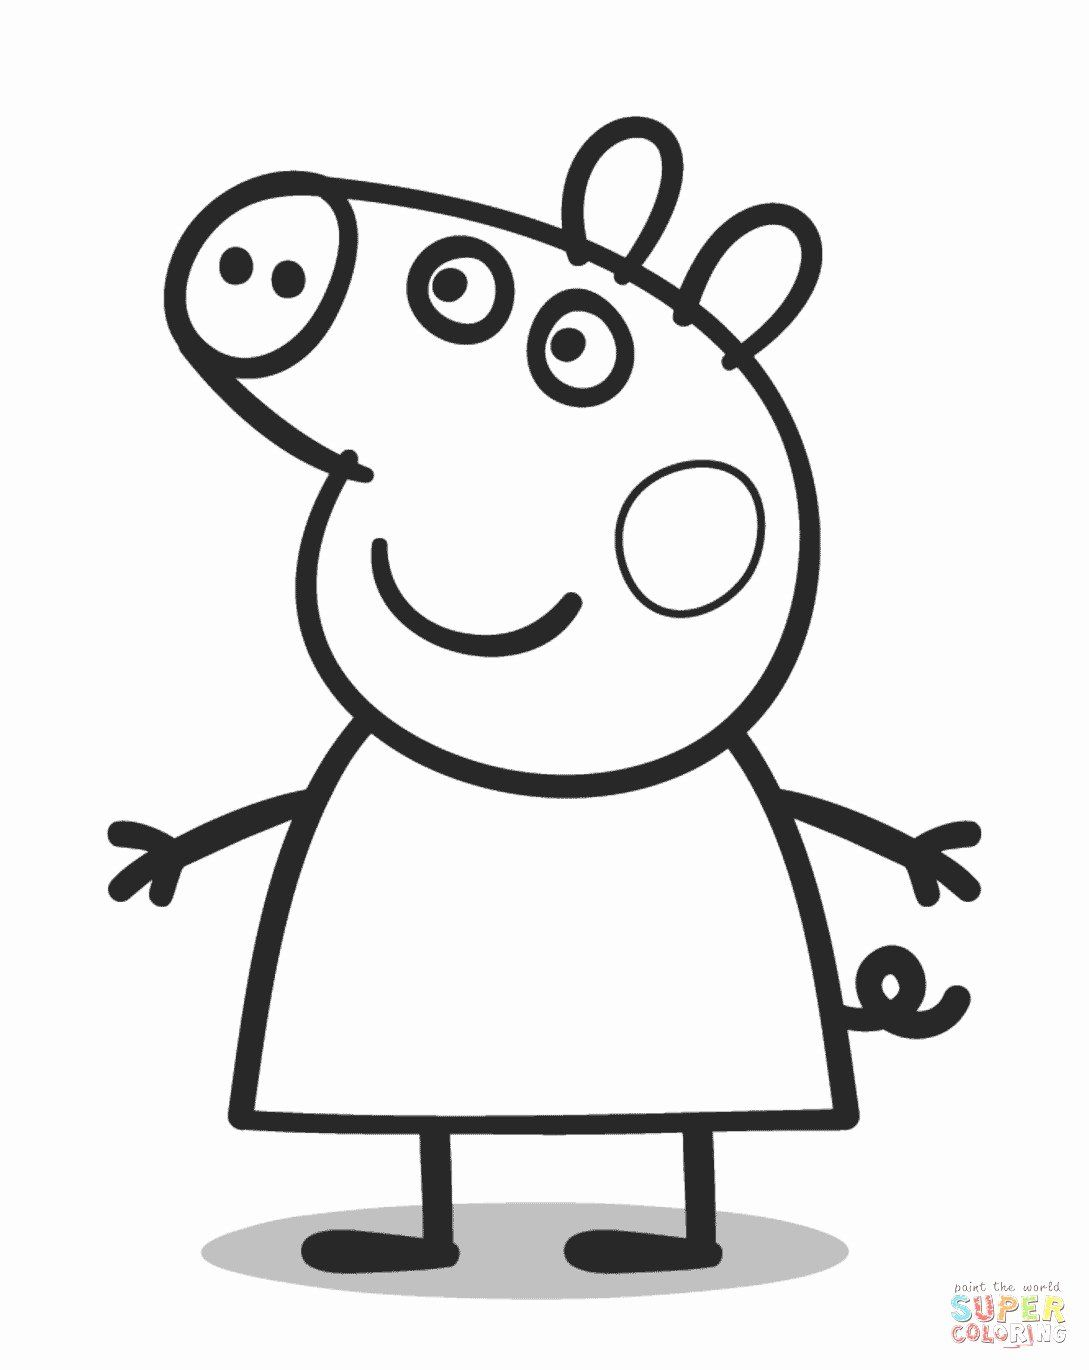 Peppa Pig Coloring Game Inspirational Pages Coloring Excelent Peppa Pig Printables Printable Peppa Pig Colouring Peppa Pig Coloring Pages Animal Coloring Pages